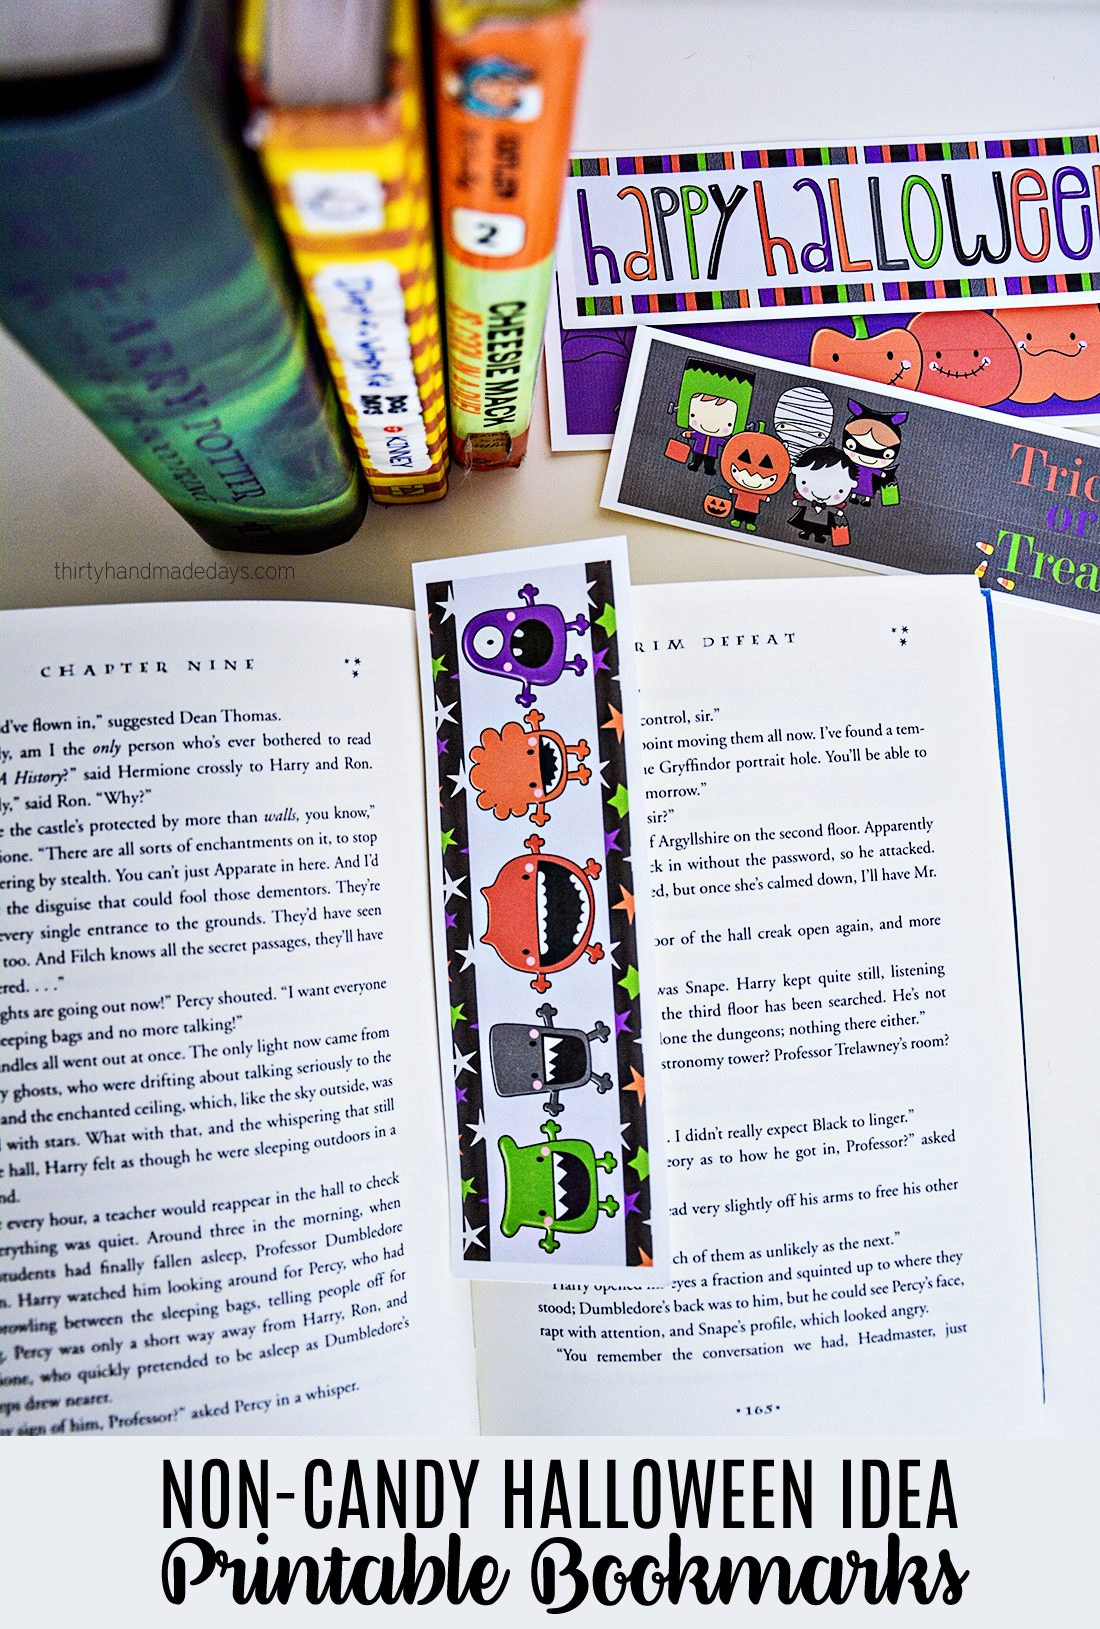 Non Candy Halloween Idea- Printable Bookmarks: these are great for classroom treats! via www.thirtyhandmadedays.com